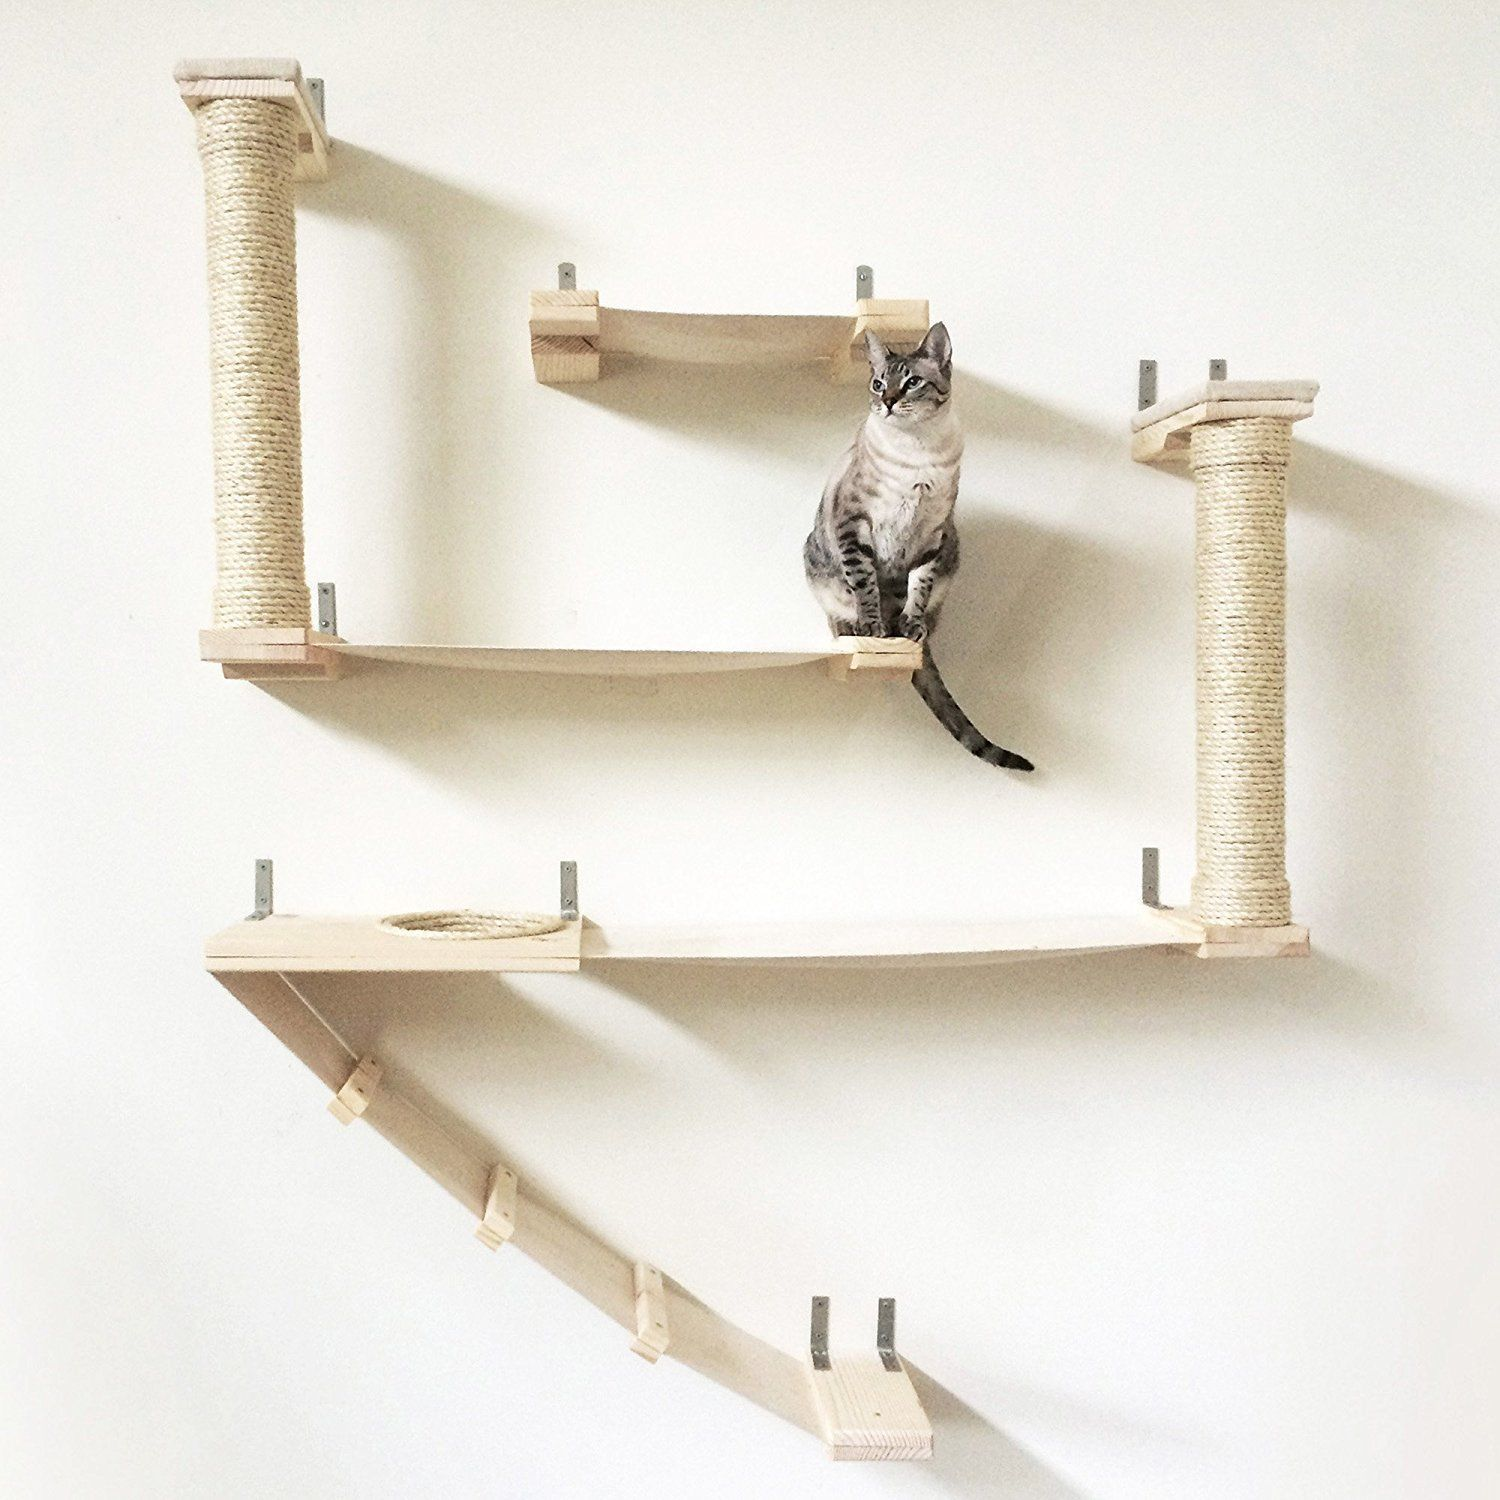 Catastrophicreations The Roman Cat Fort Hammock Climbing Activity Wall Mounted